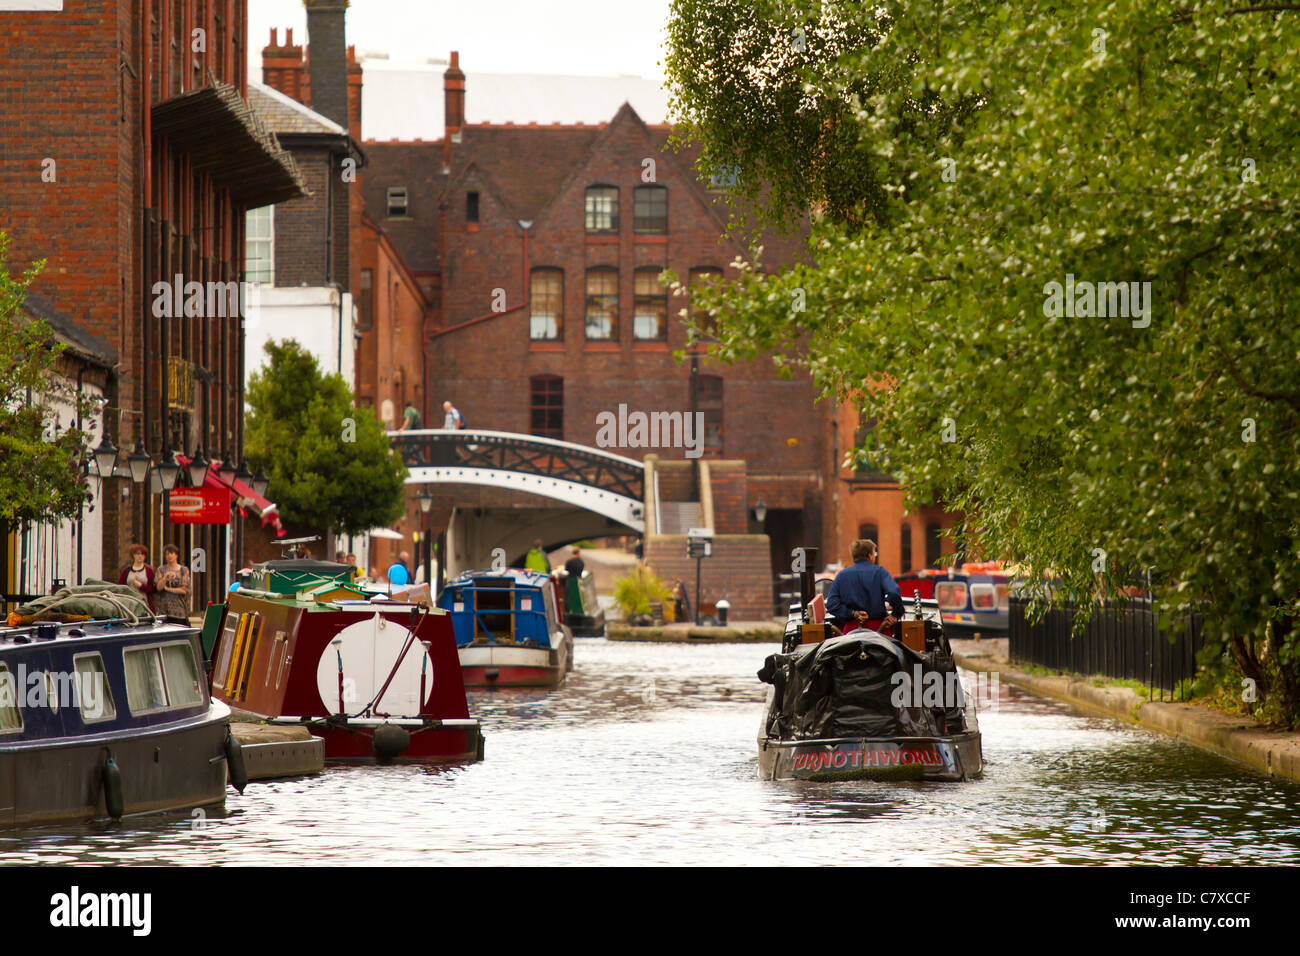 Barge on the canals of Birmingham, West Midlands, England, UK - Stock Image